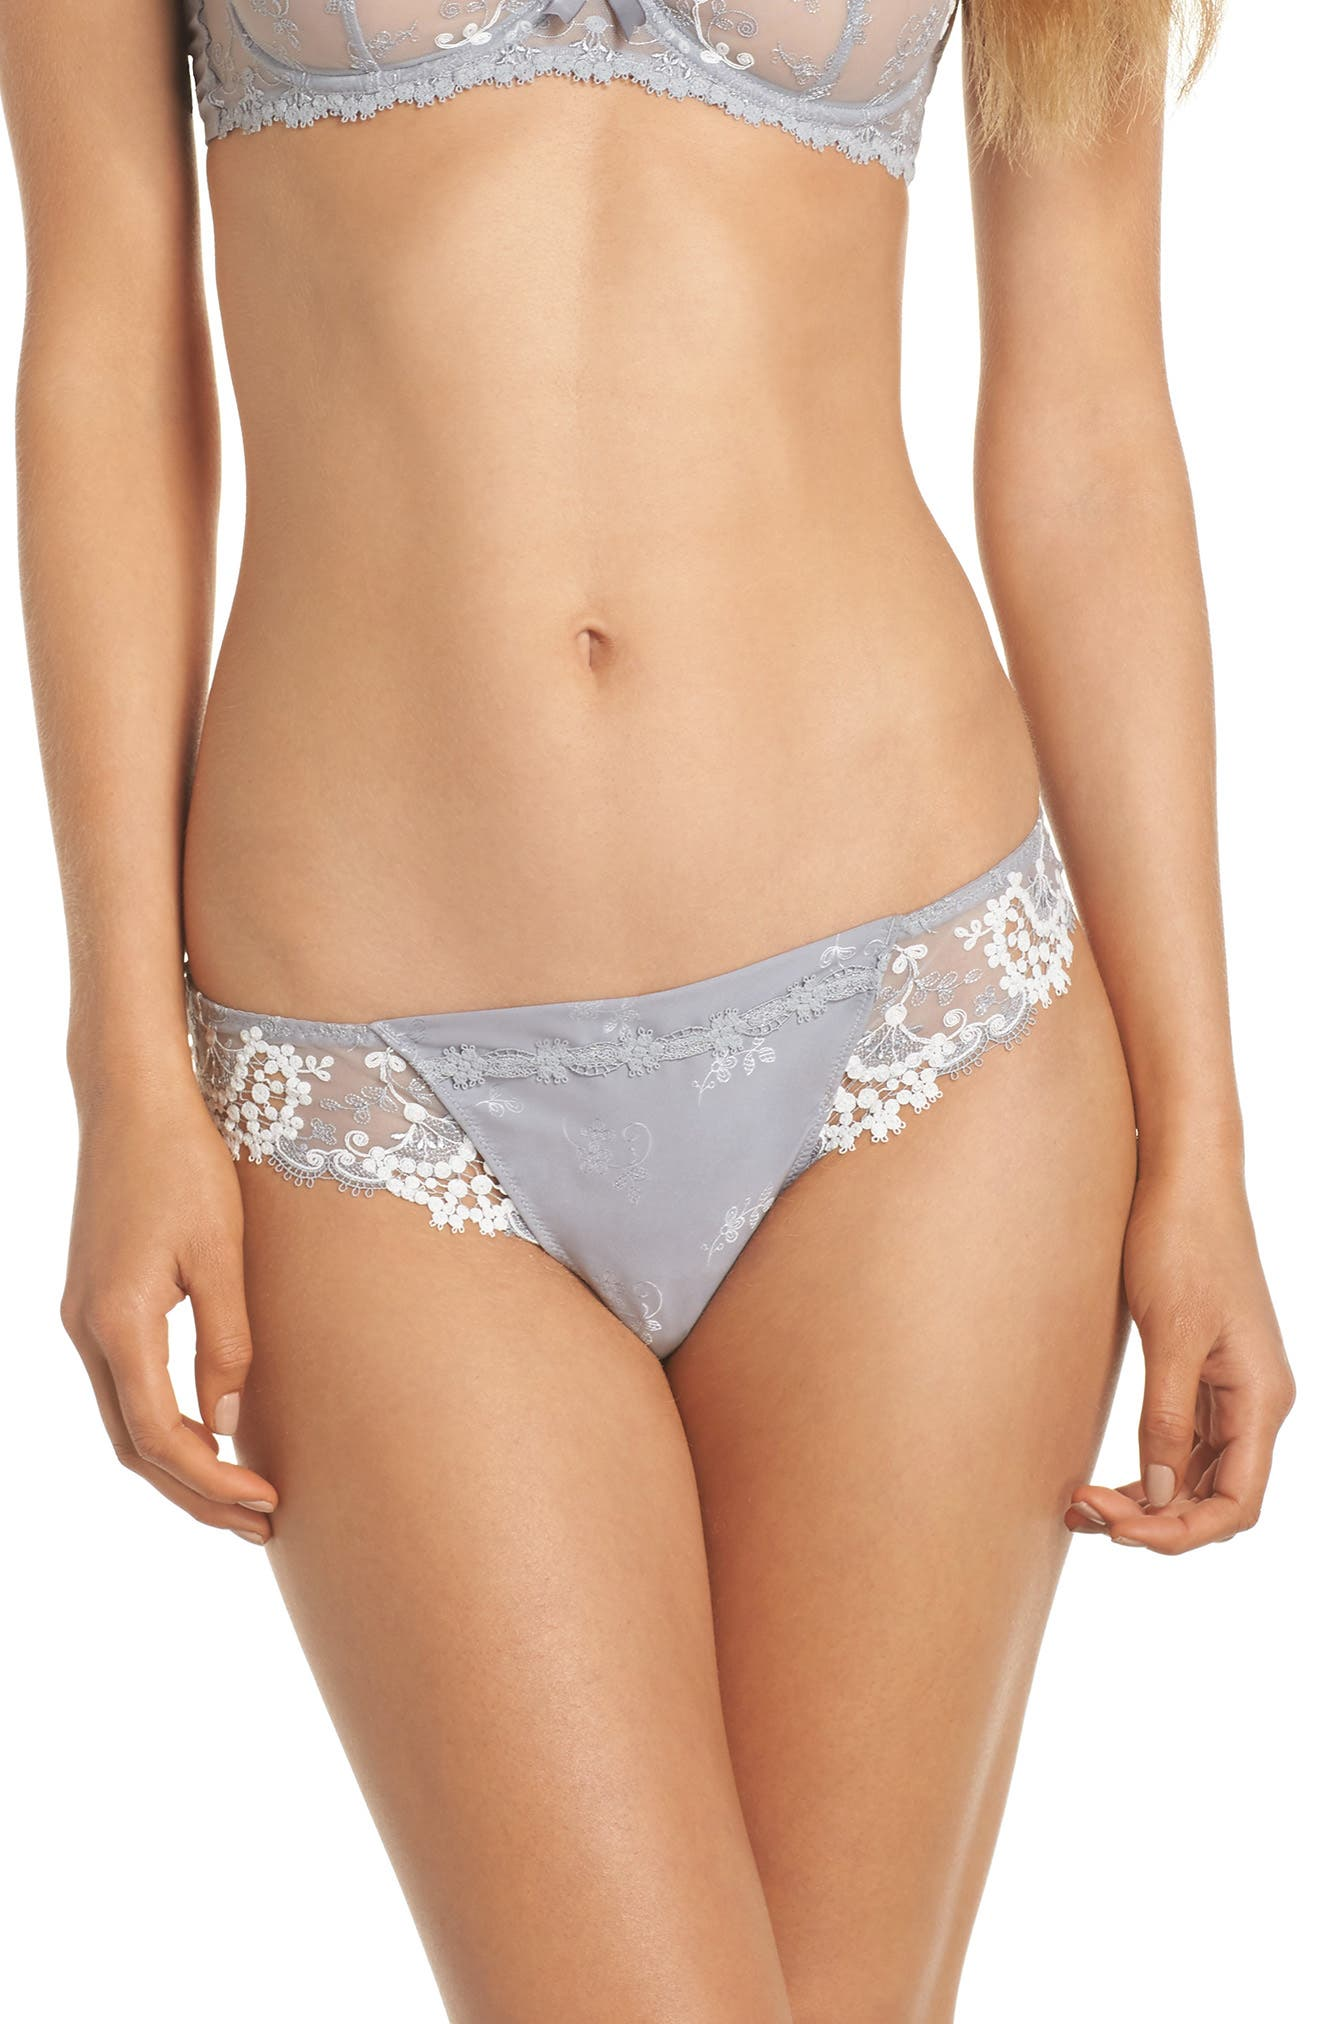 'Wish' Embroidered Tanga Thong,                             Main thumbnail 1, color,                             020